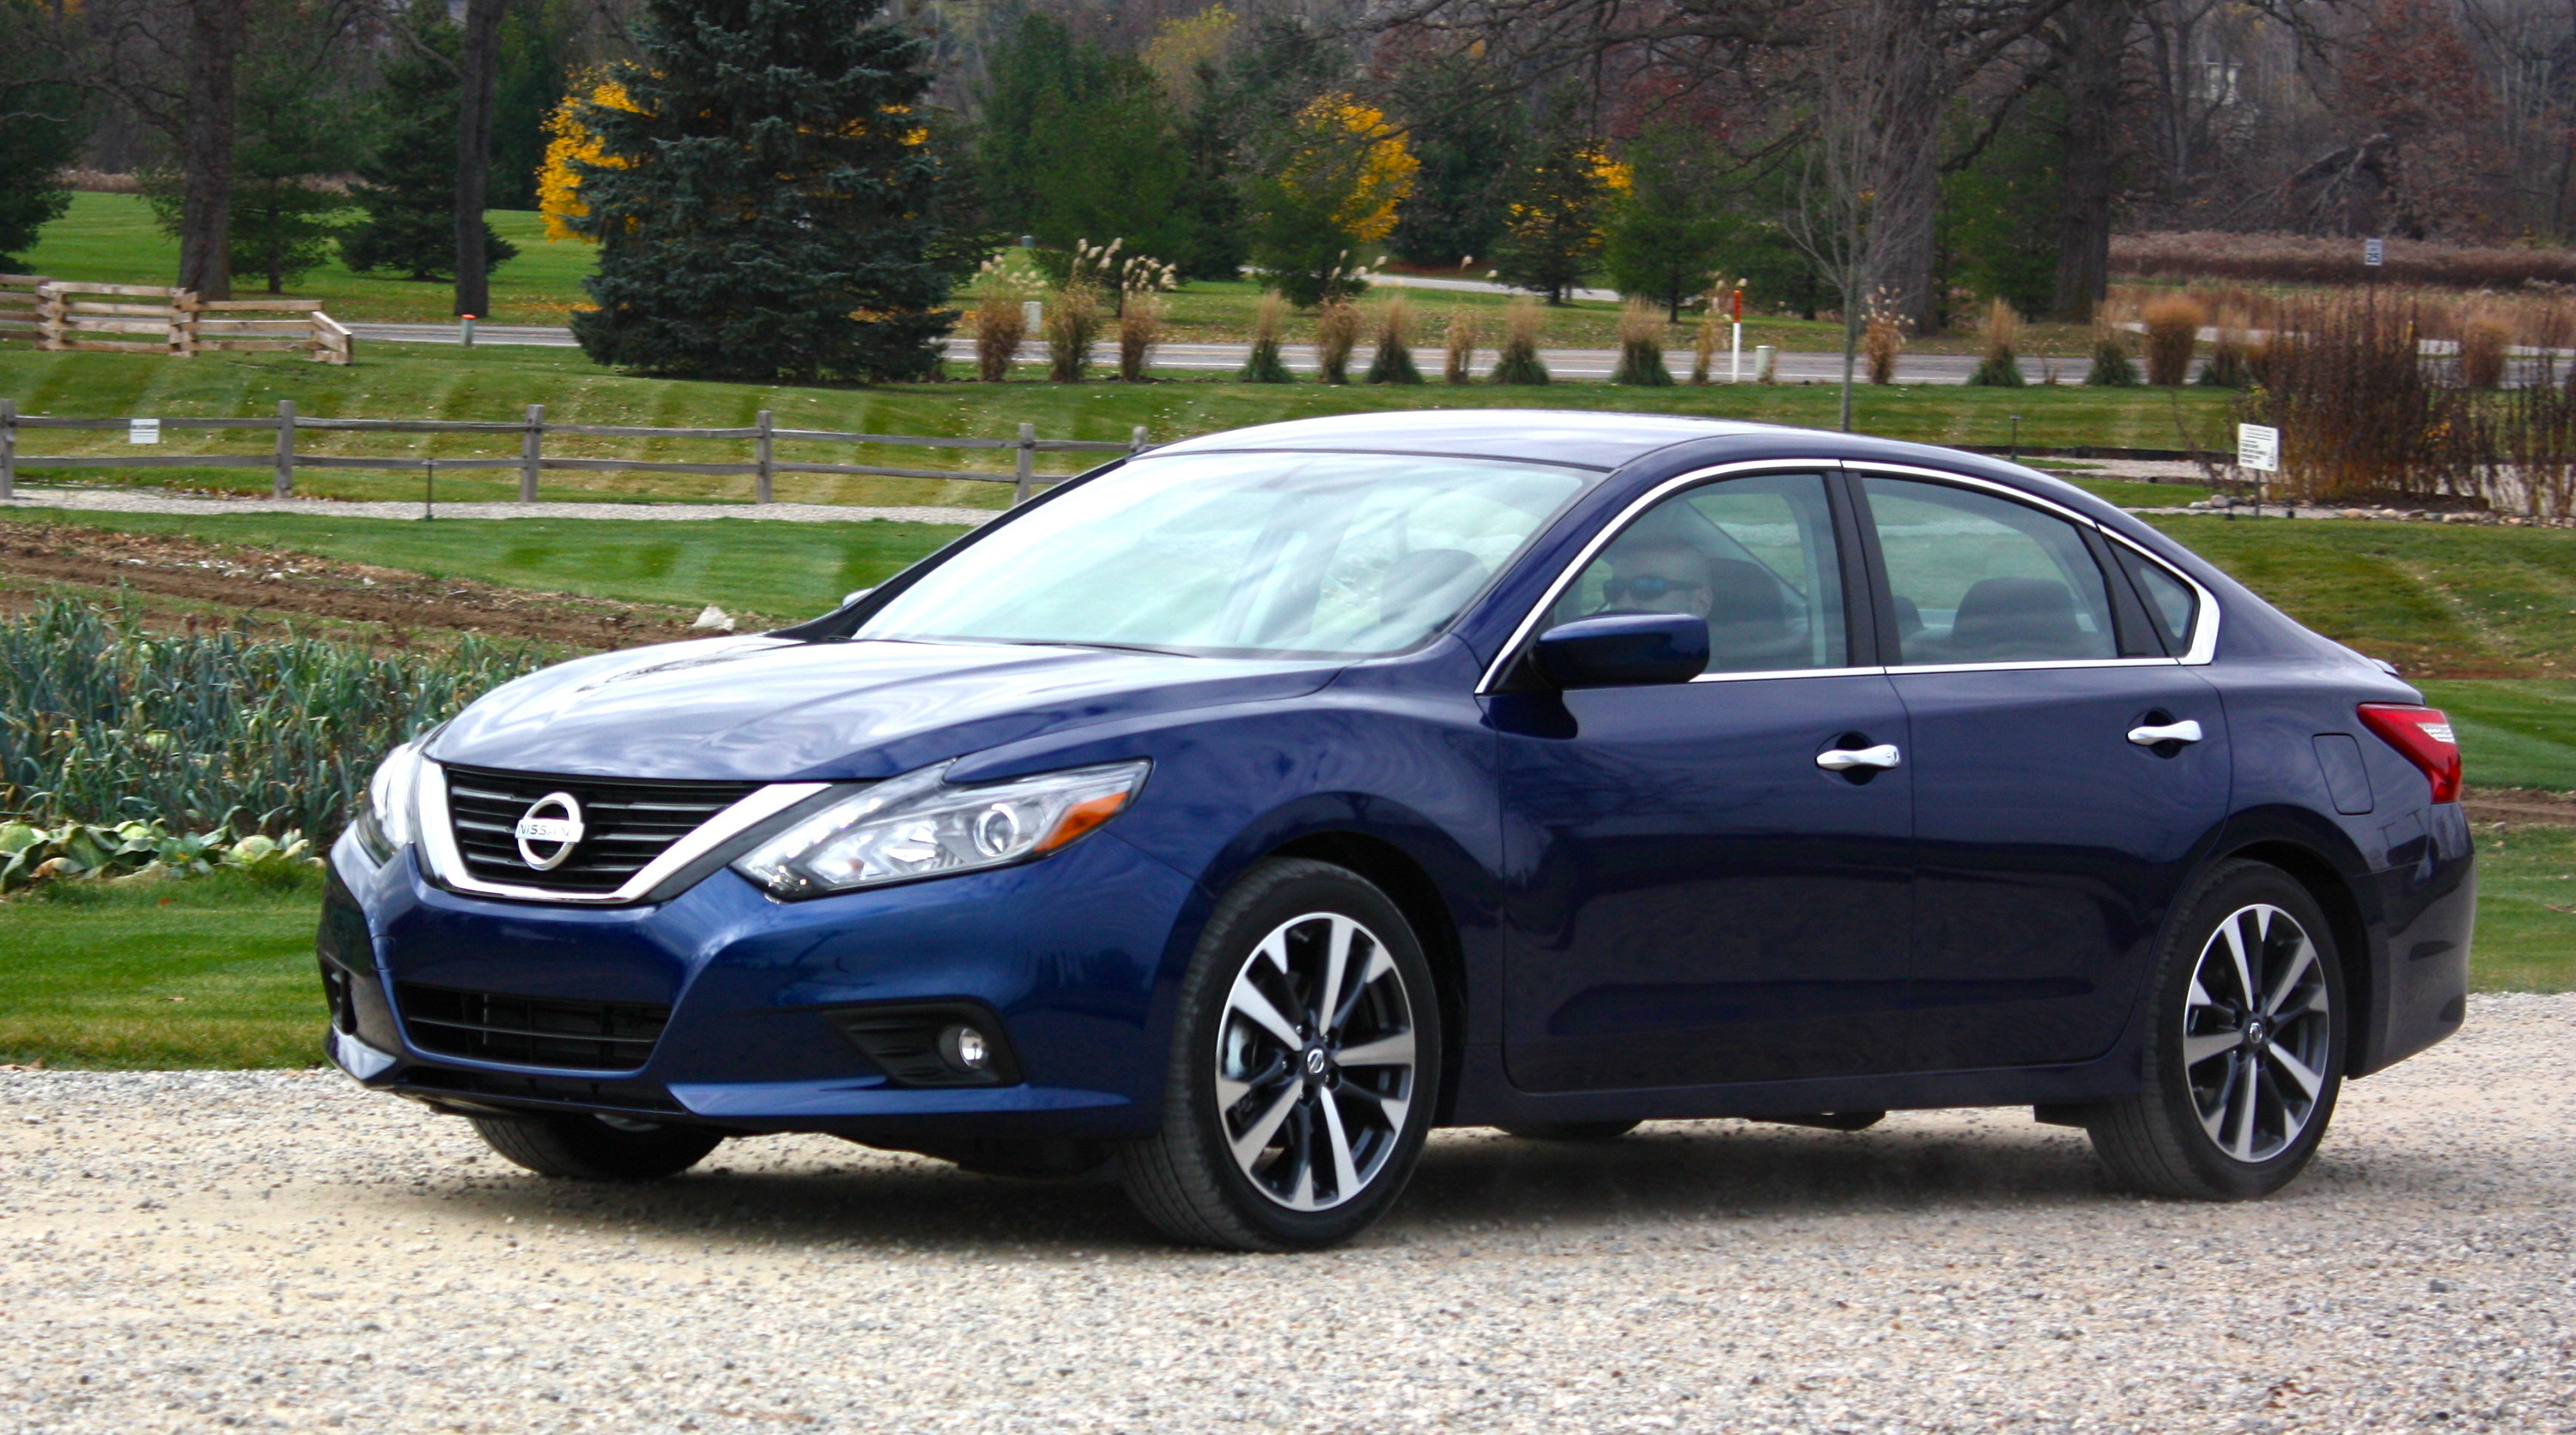 2016 nissan altima driving impression and review gallery 654976 top speed. Black Bedroom Furniture Sets. Home Design Ideas